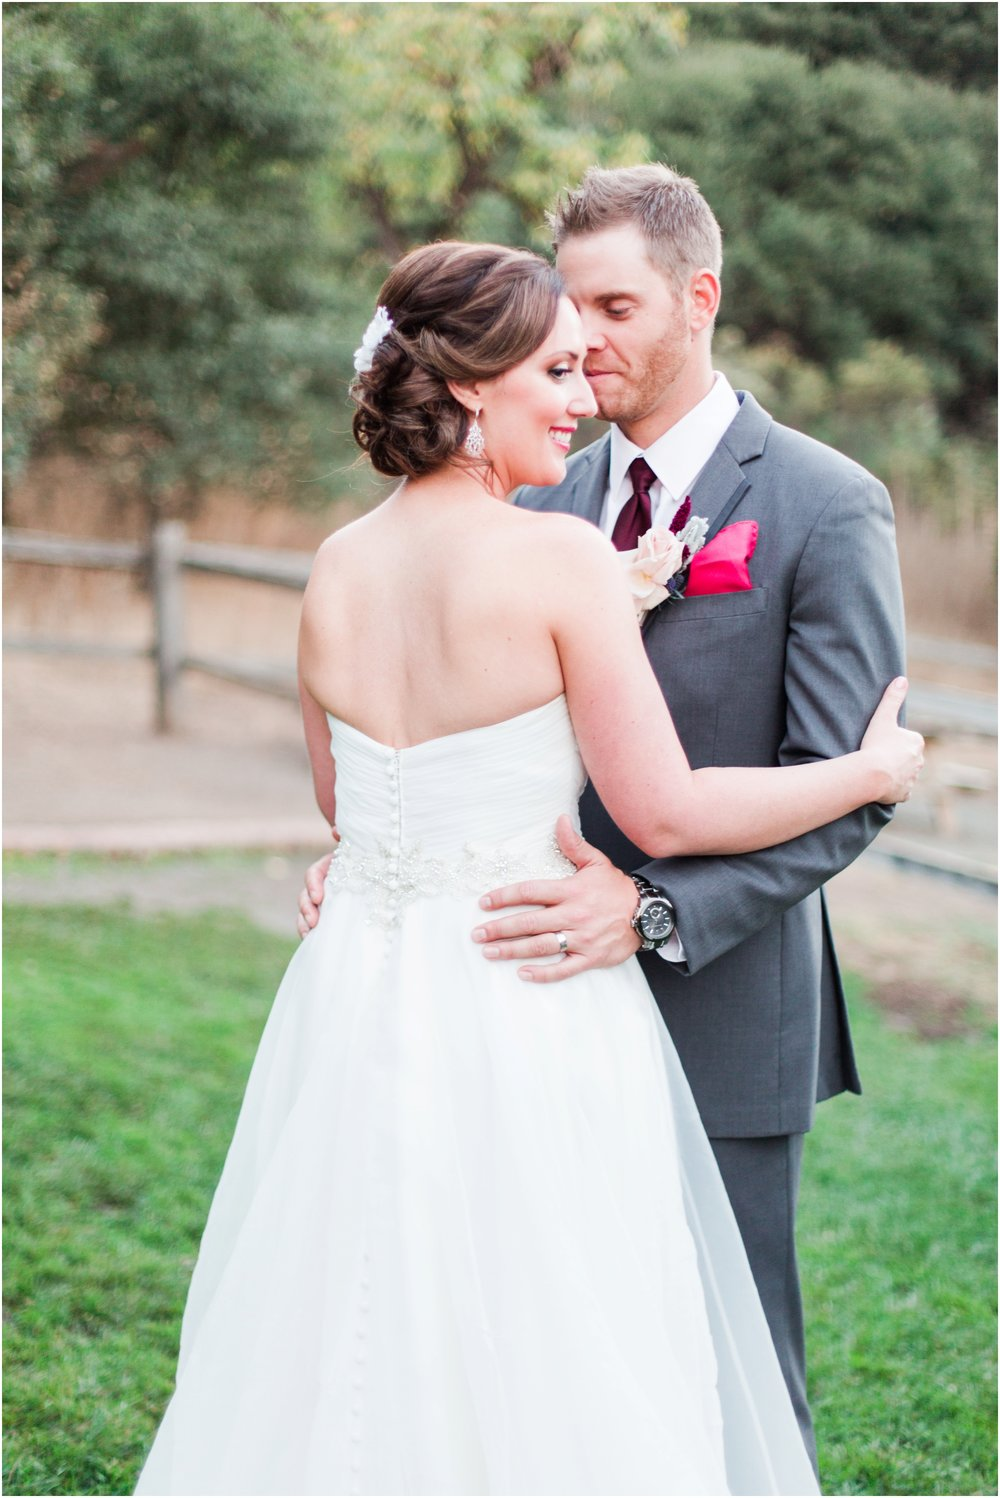 Picchetti Winery wedding pictures by Briana Calderon Photography_0493.jpg